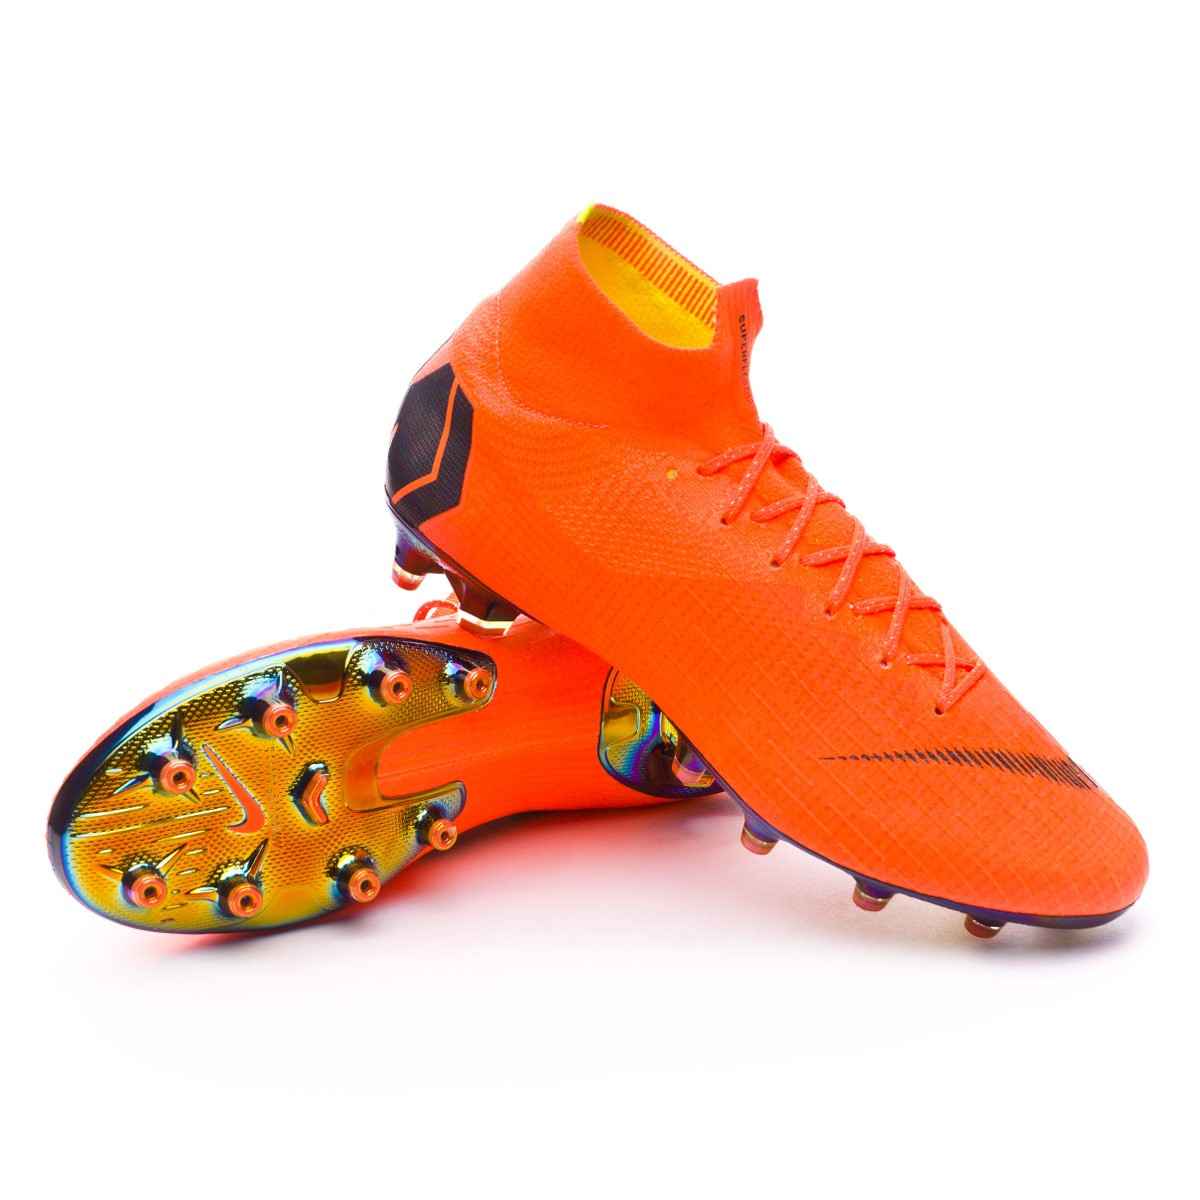 947cb21b20f2 Bota Mercurial Superfly VI Elite AG-Pro Total orange-Black-Volt